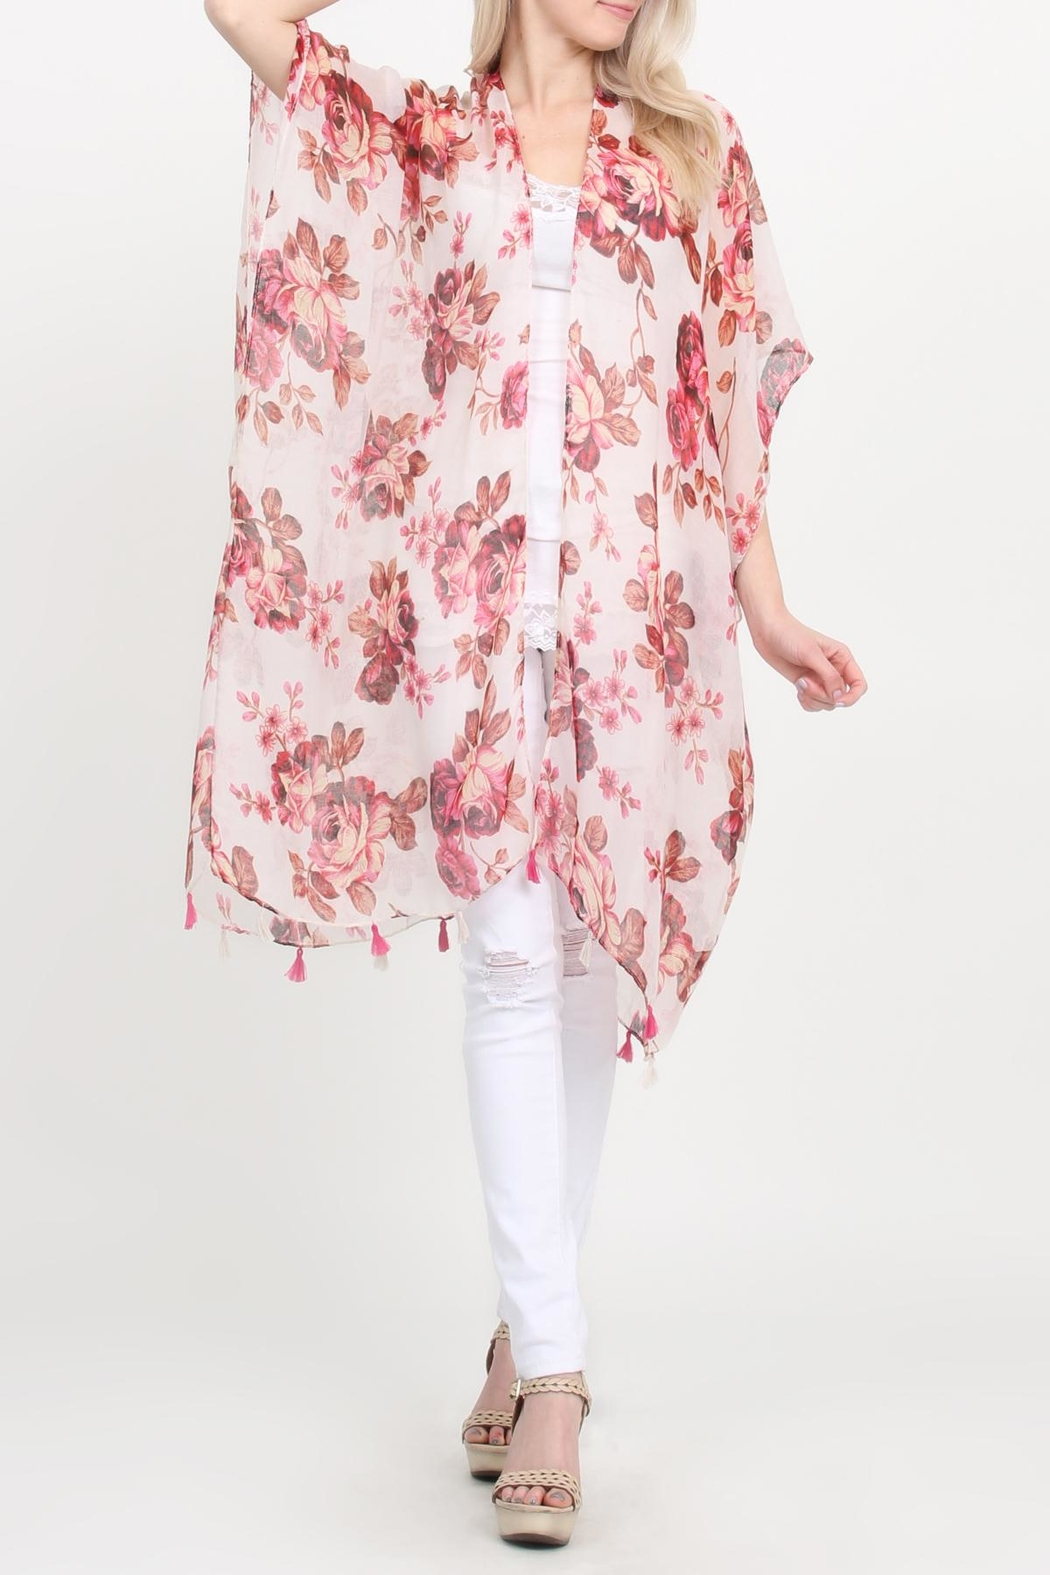 Riah Fashion Open-Front Knee-Length Floral-Cardigan - Front Cropped Image